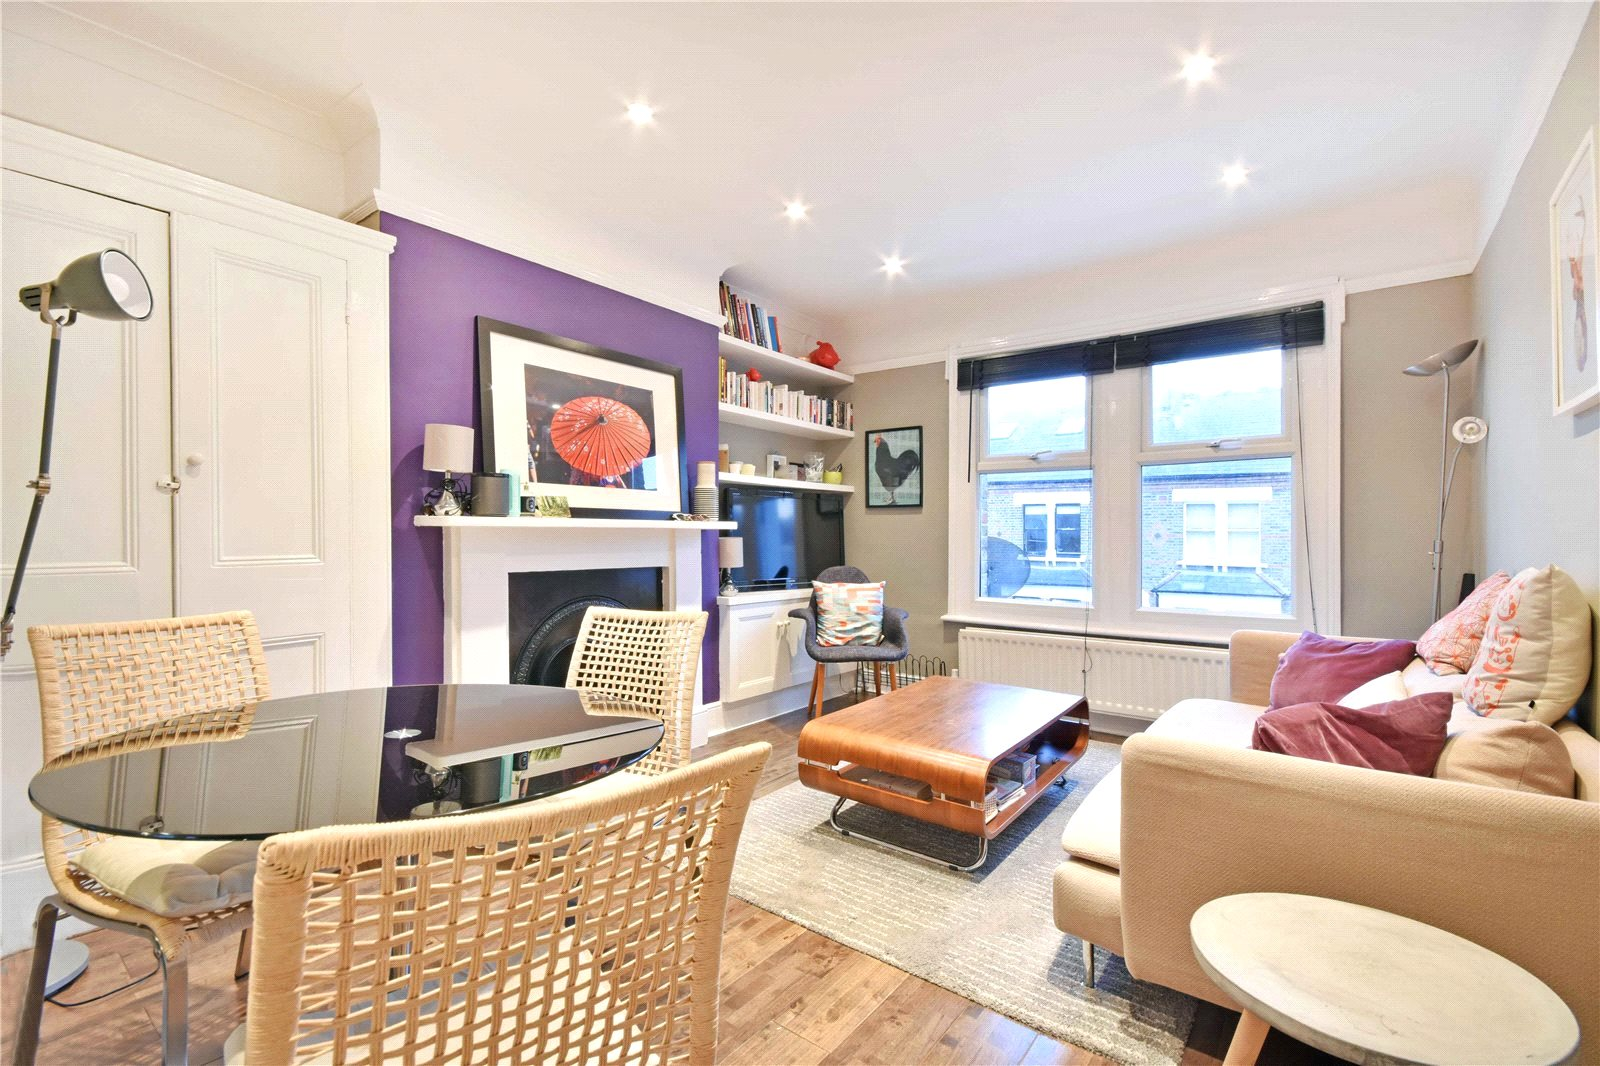 2 Bedrooms Flat for sale in Glengall Road, Kilburn, London, NW6